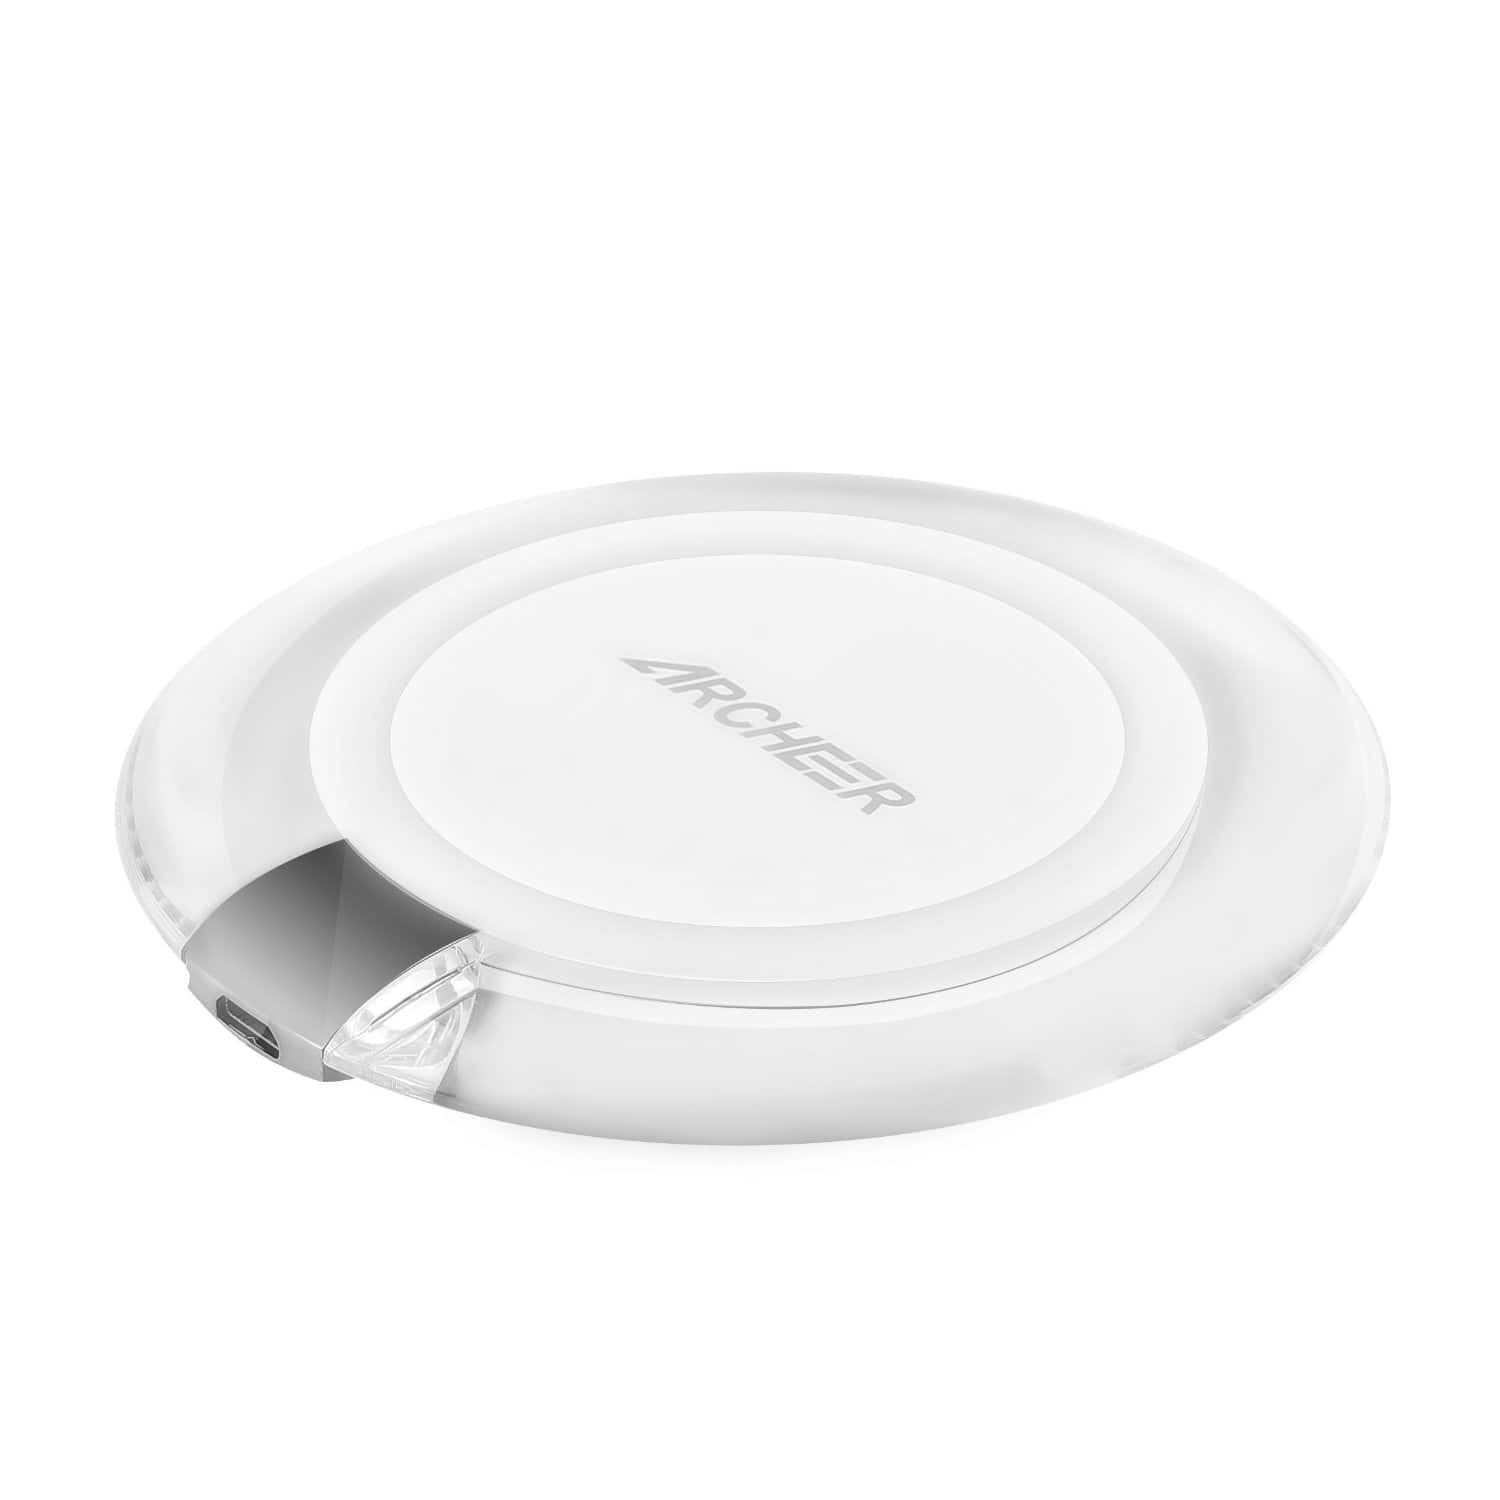 Archeer Qi Wireless Charging Pad  $3